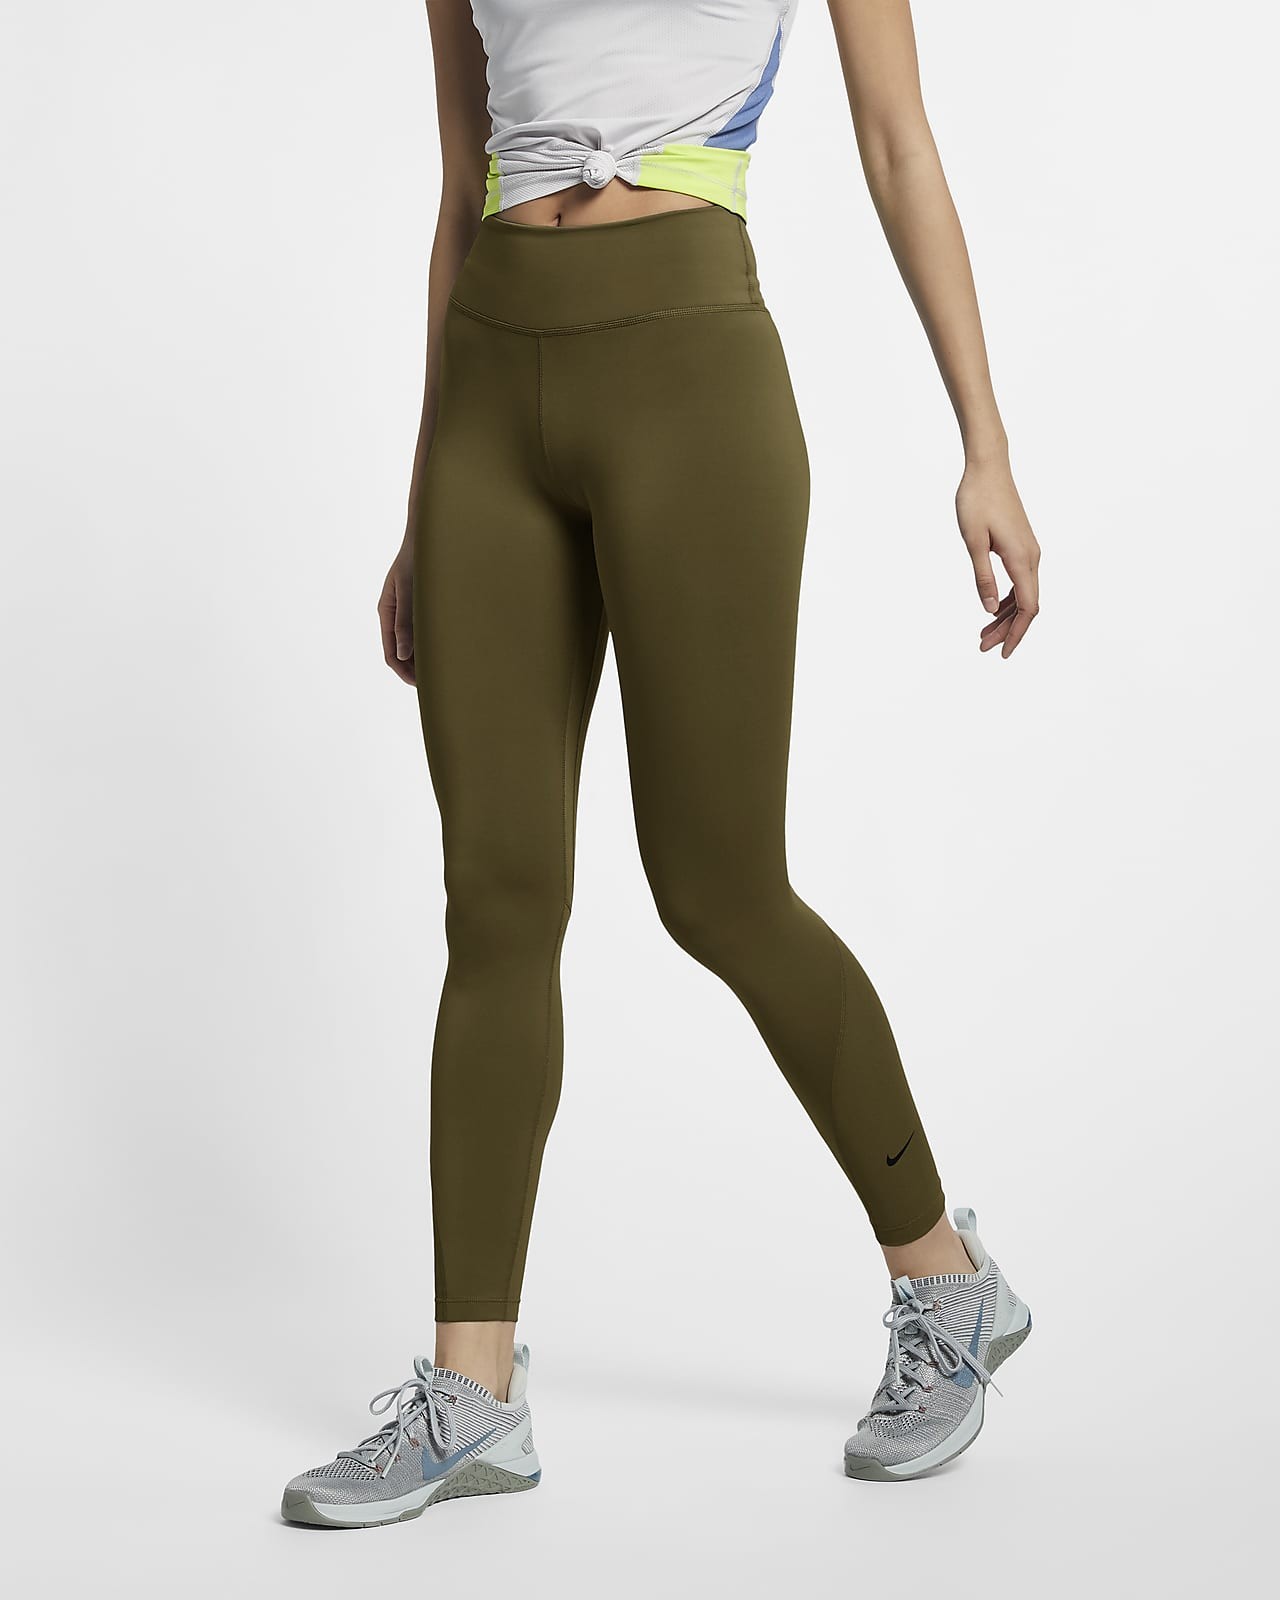 Nike One Women's Mid-Rise 7/8 Tights